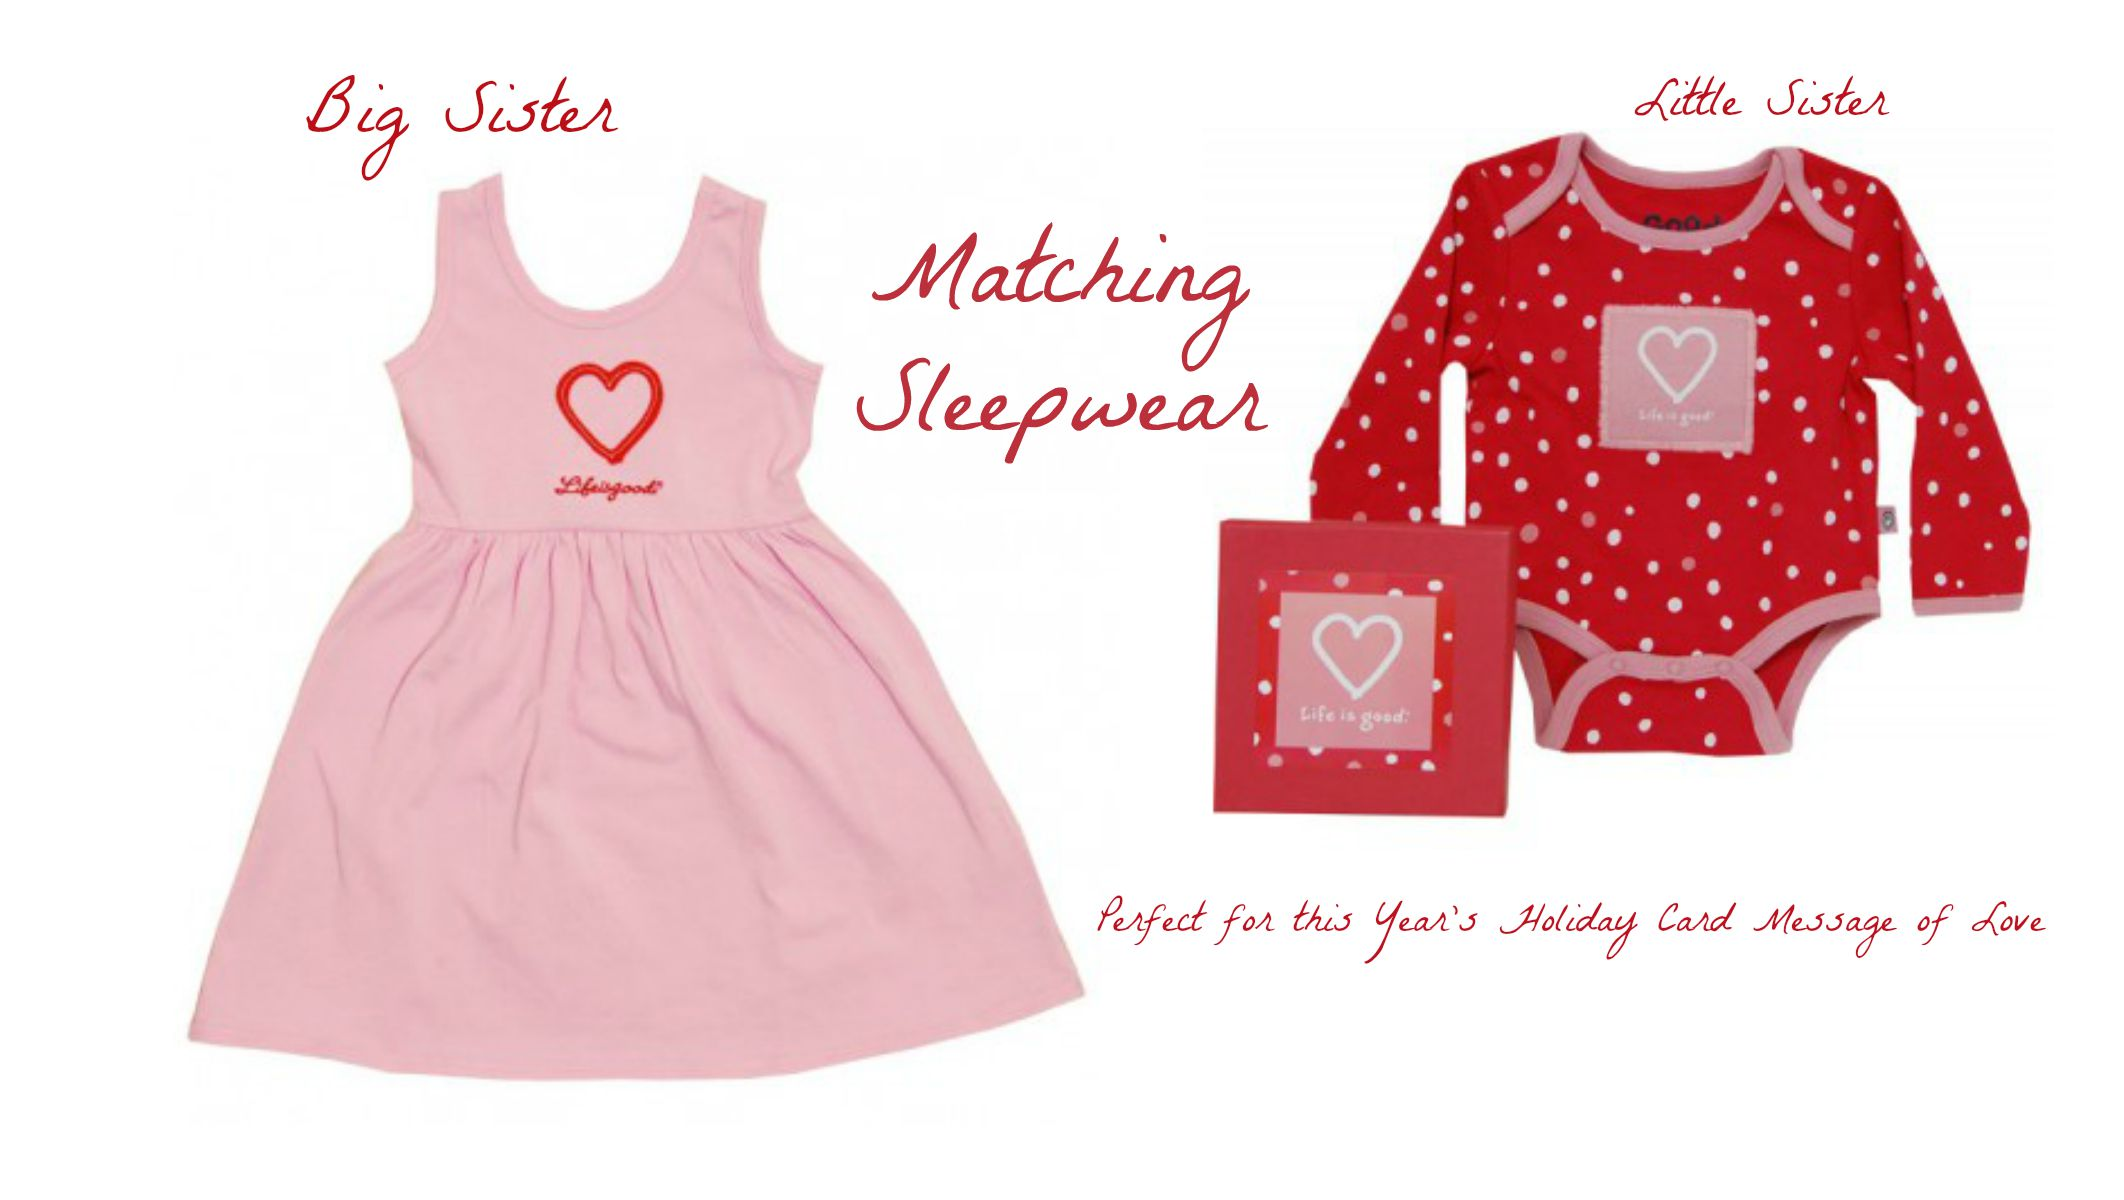 Holiday Photo Card Messages of Love, big sister baby sister matching sleepwear